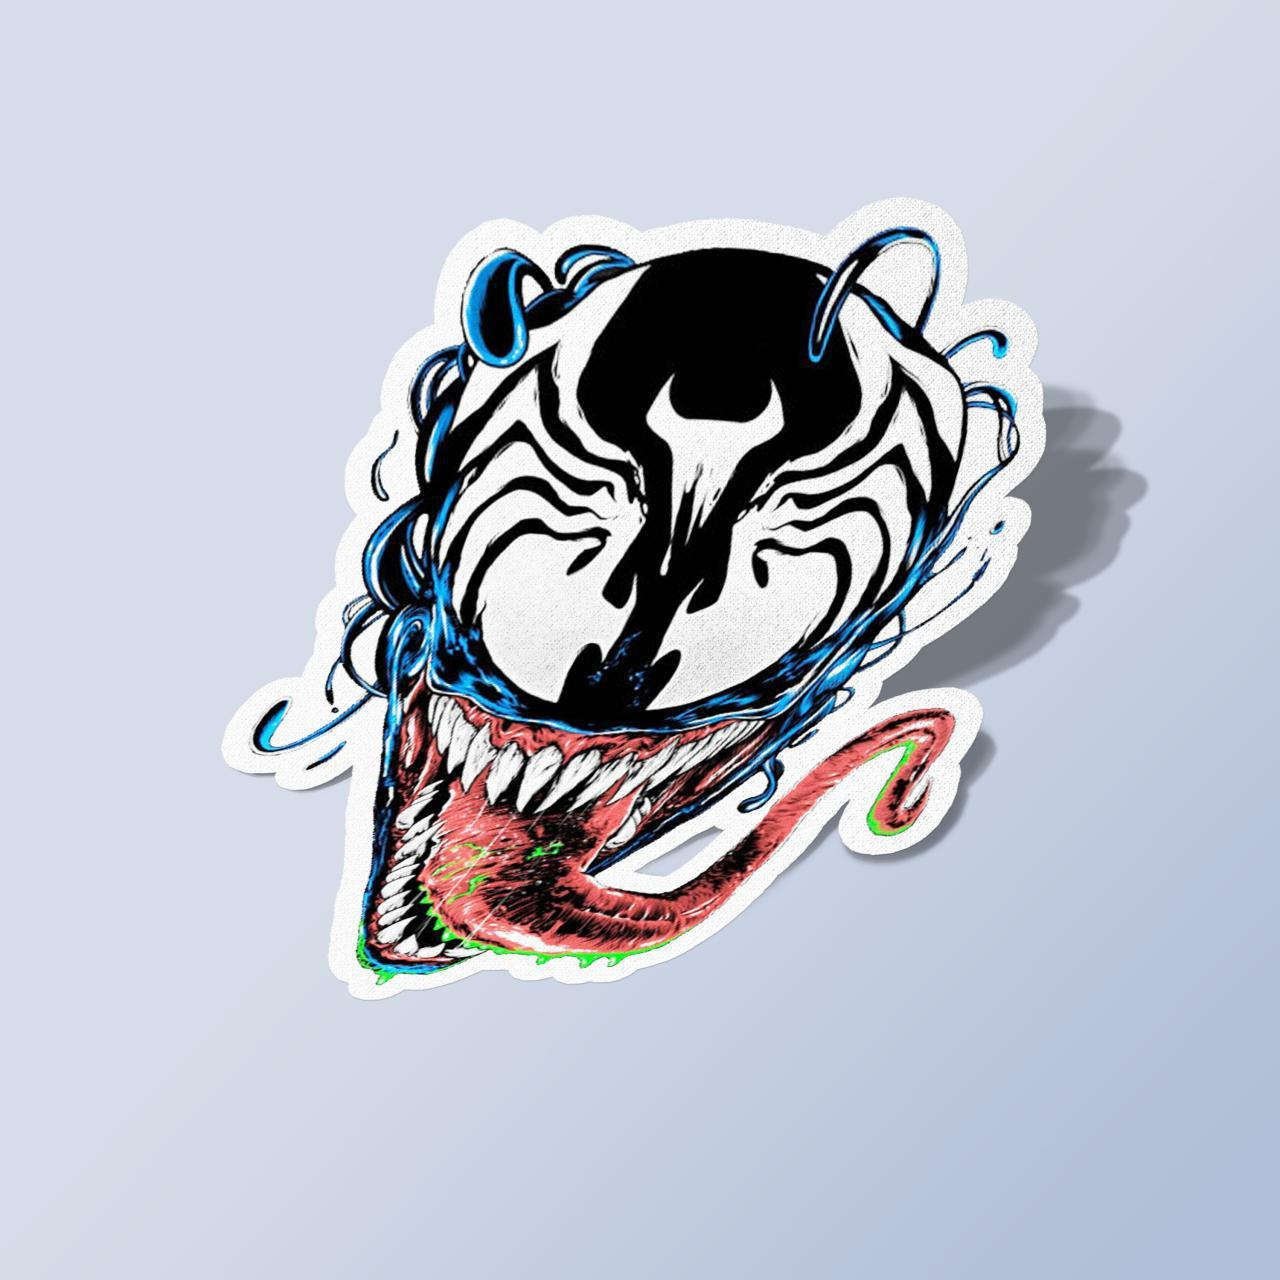 And Another Venom's Face